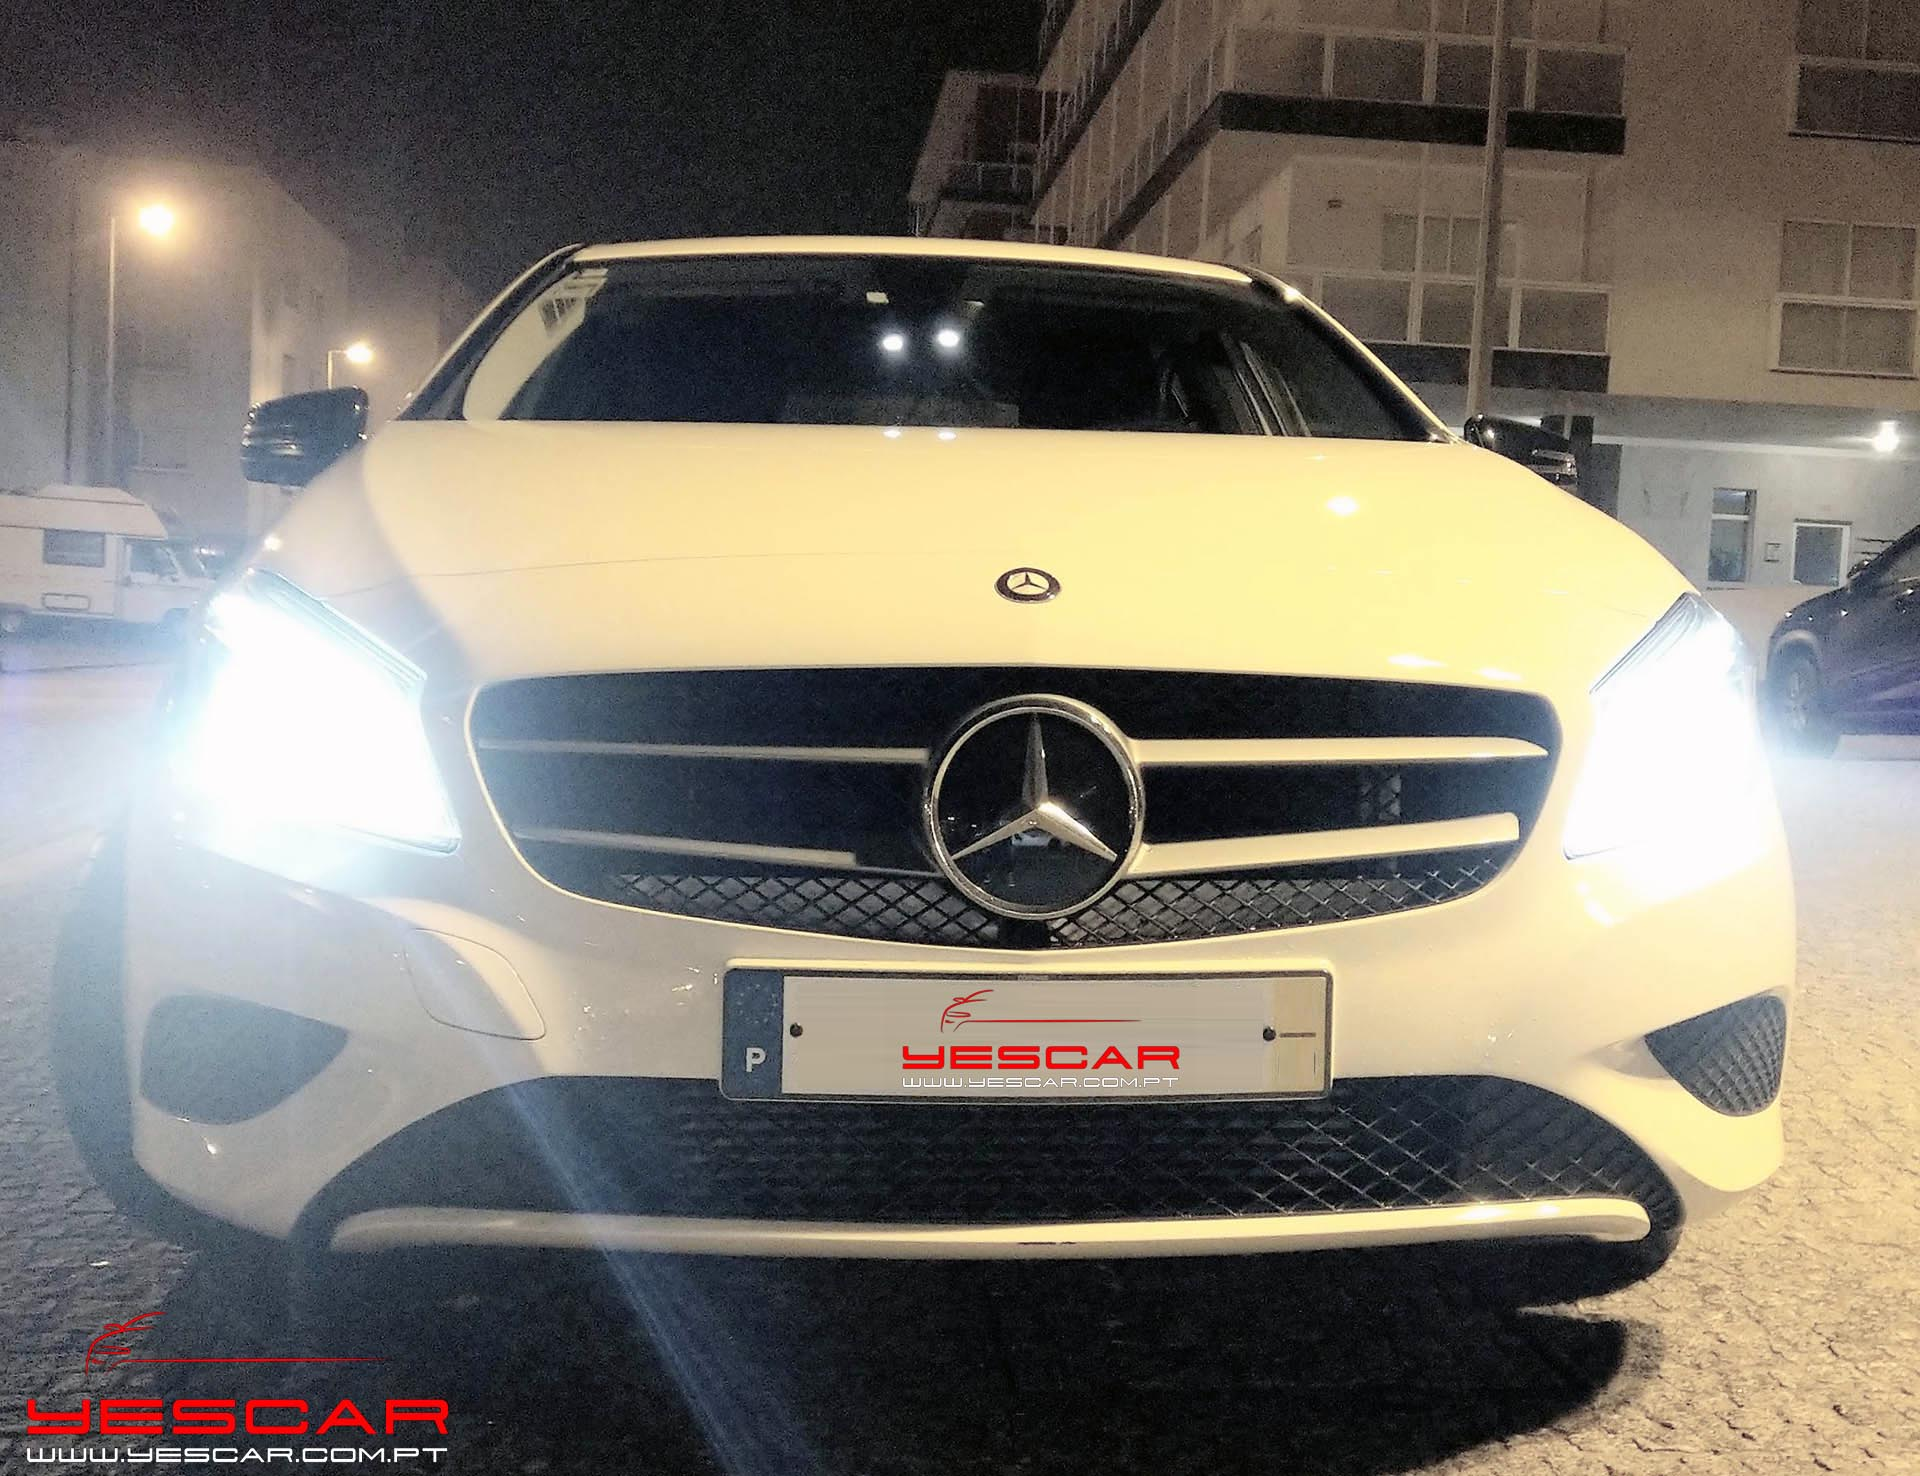 YESCAR Mercedes Benz Classe A 180 AMG 5p